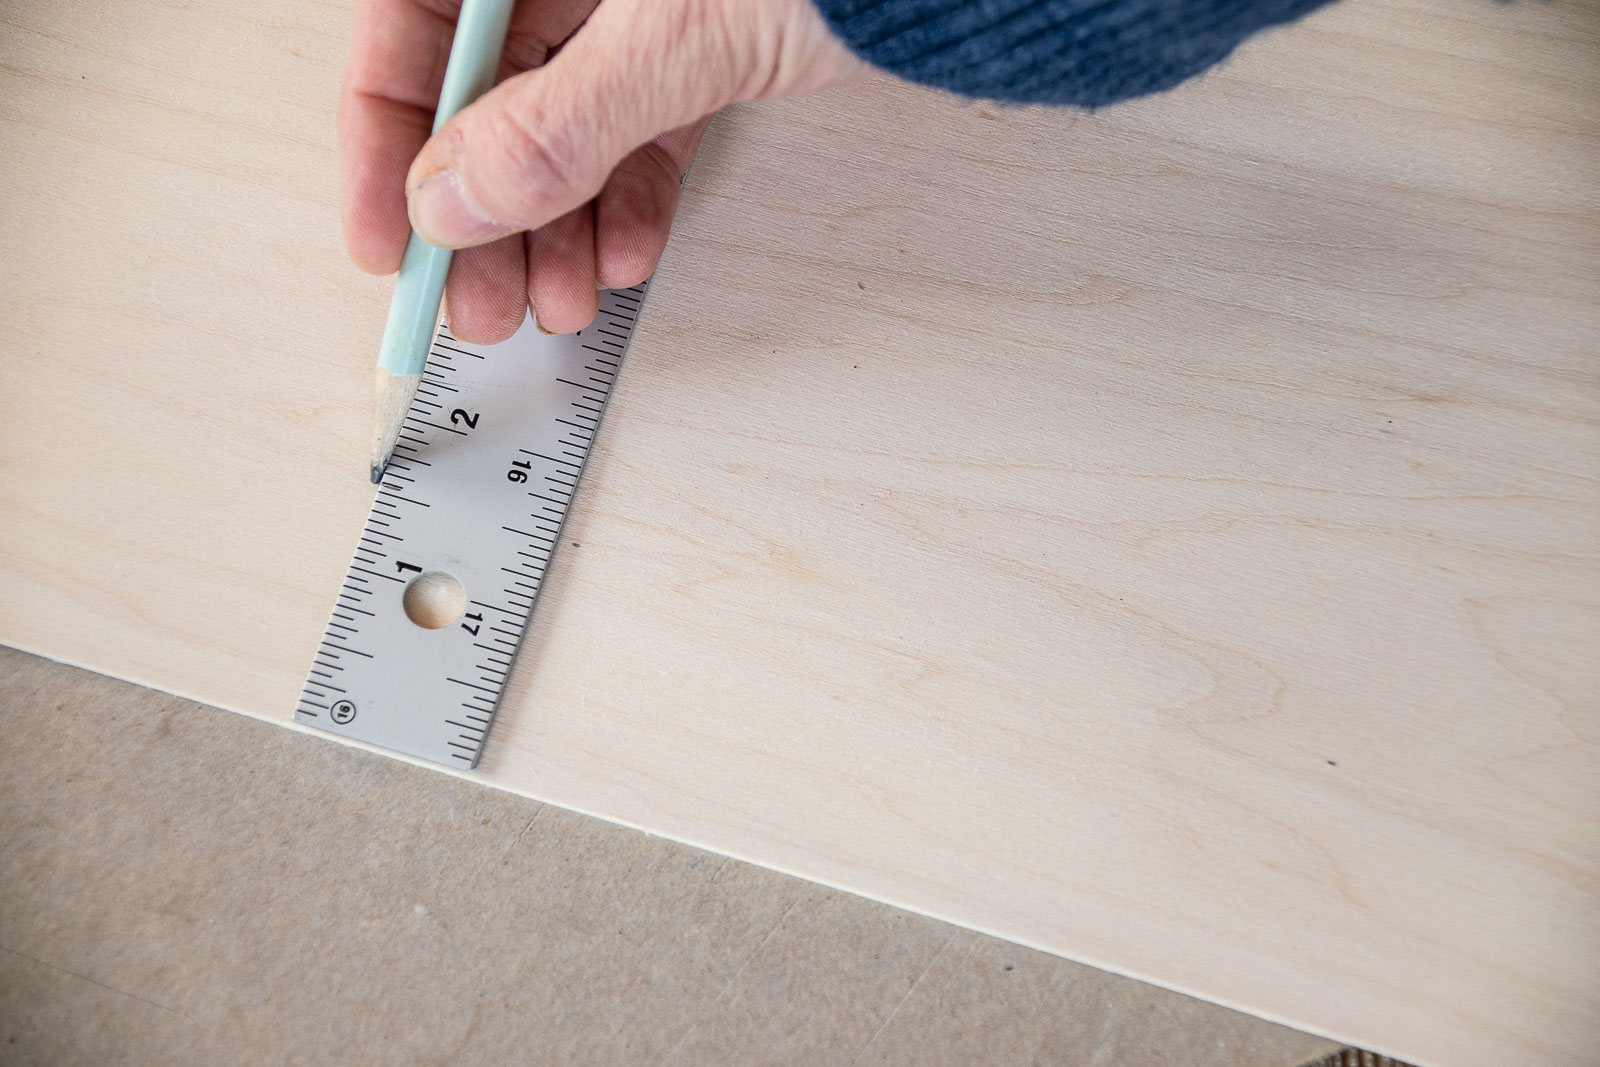 measure how wide the frame is